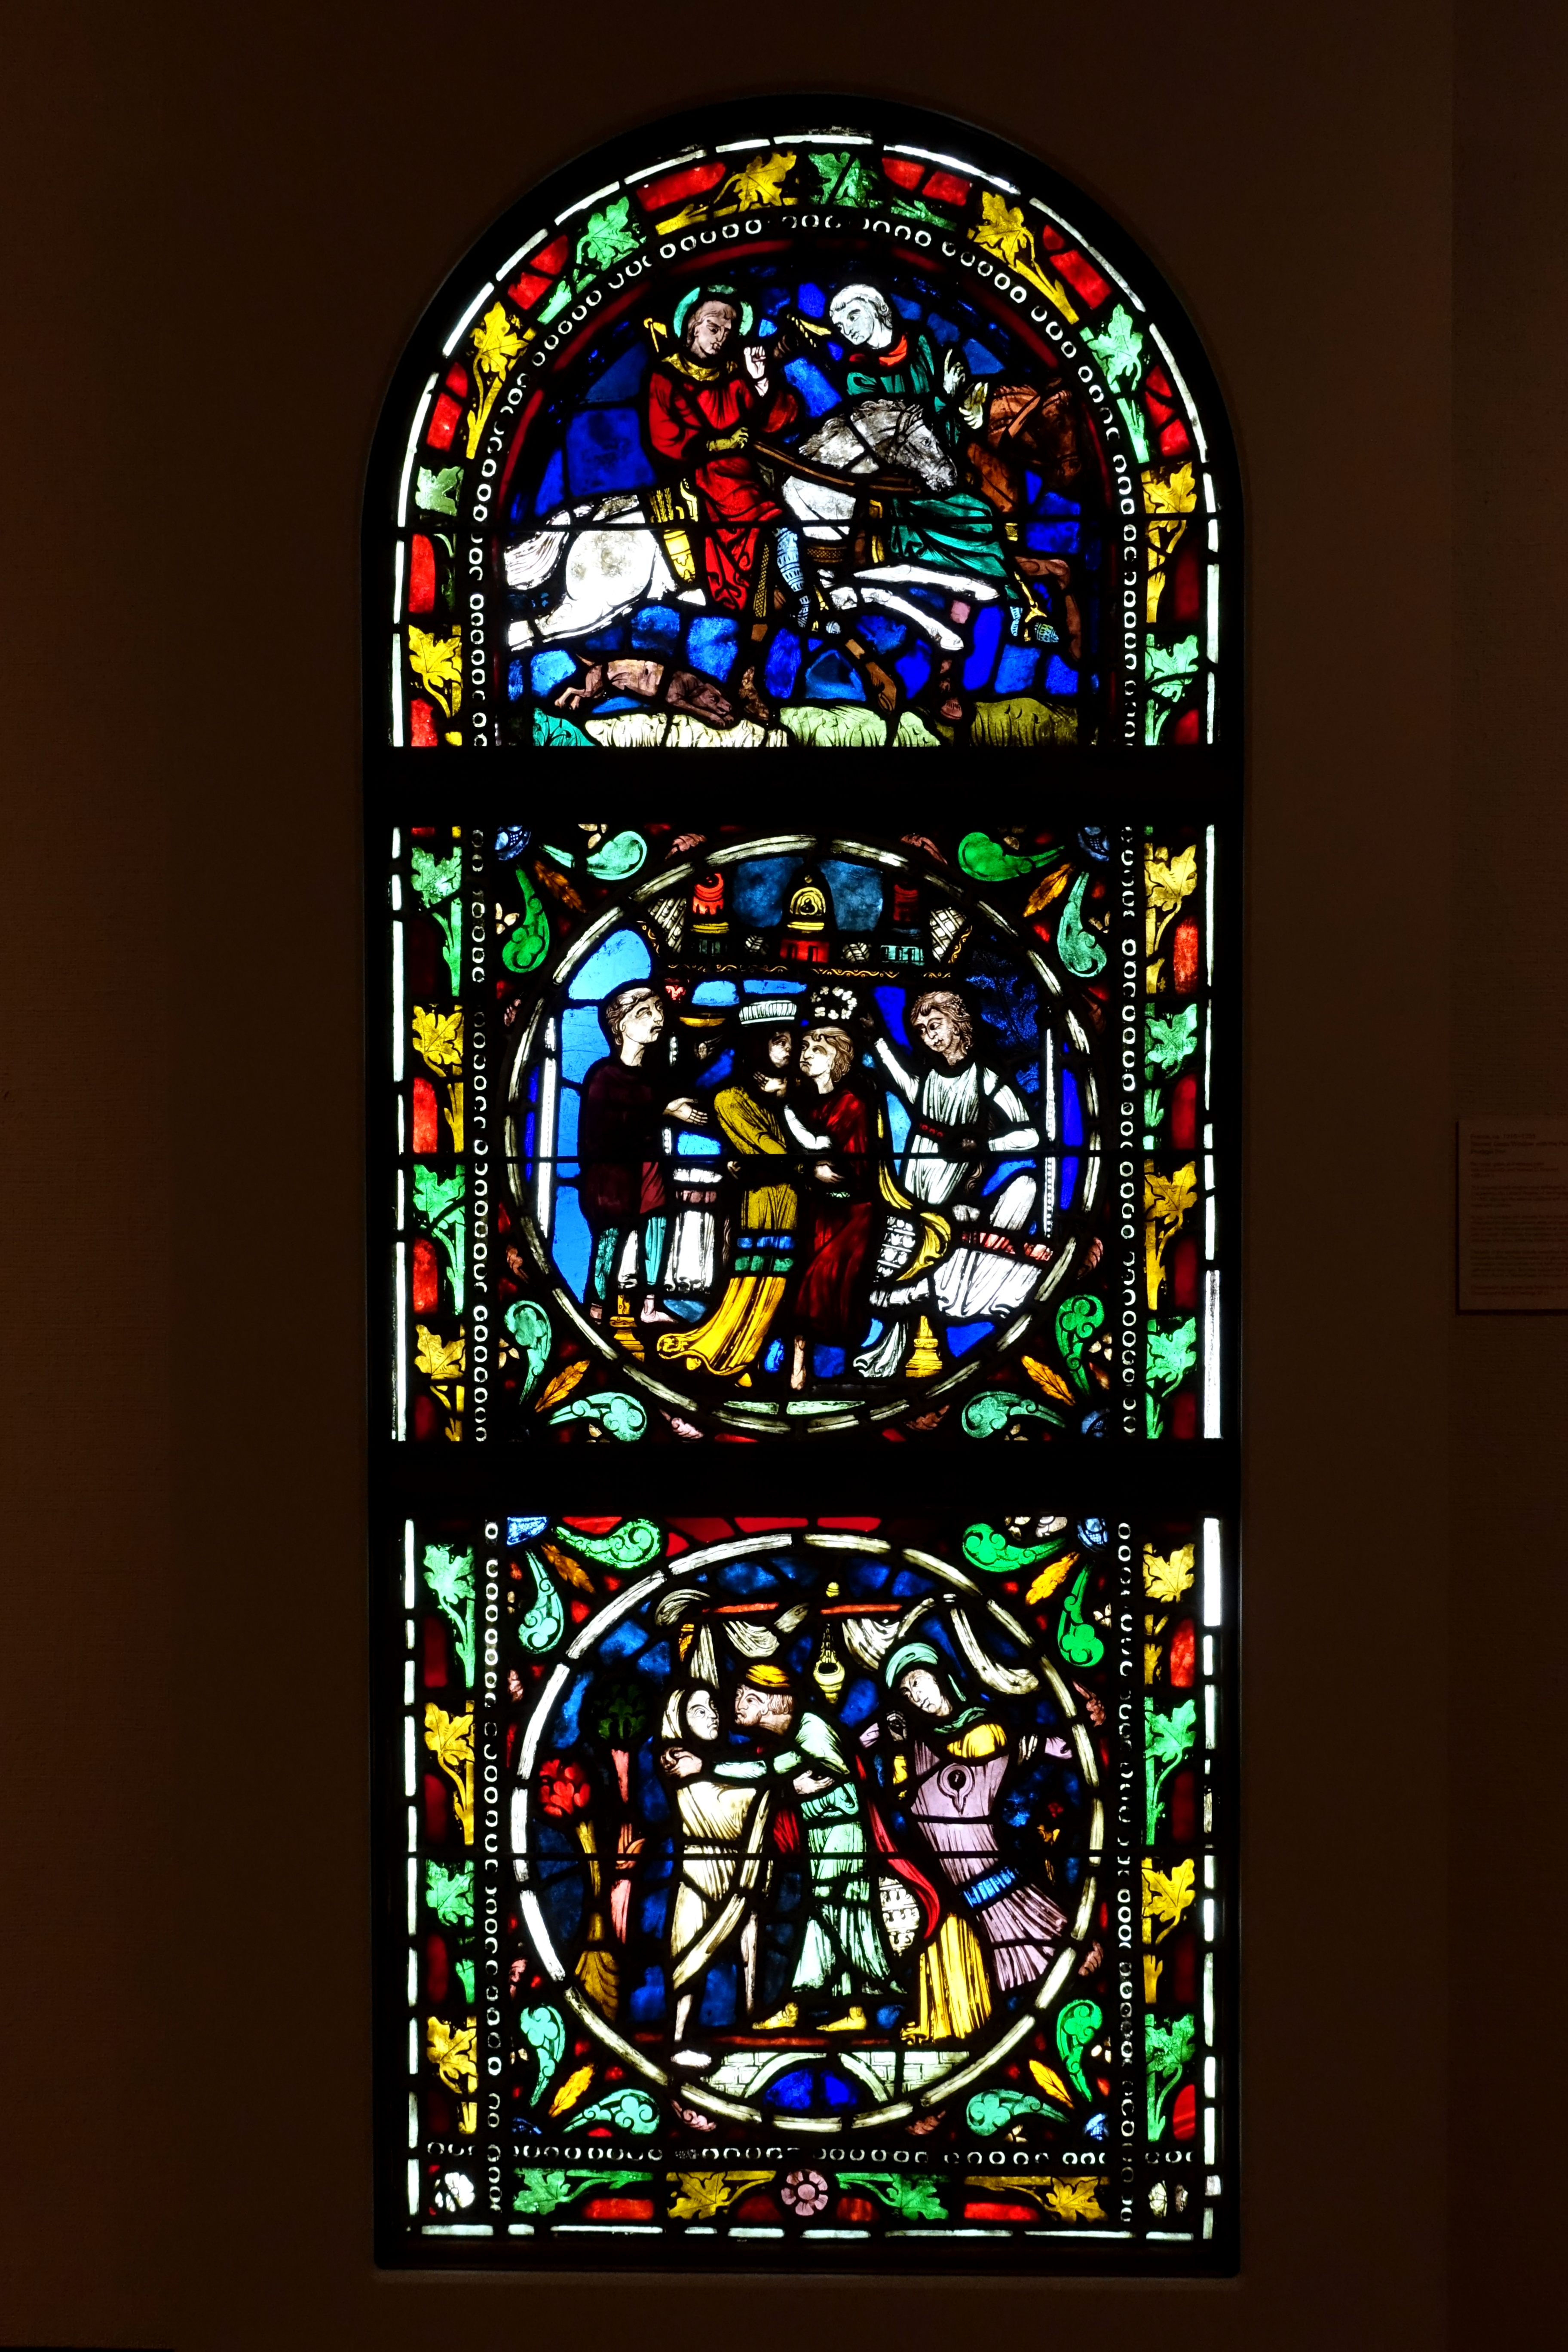 FileStained glass window with the Parable of the Prodigal